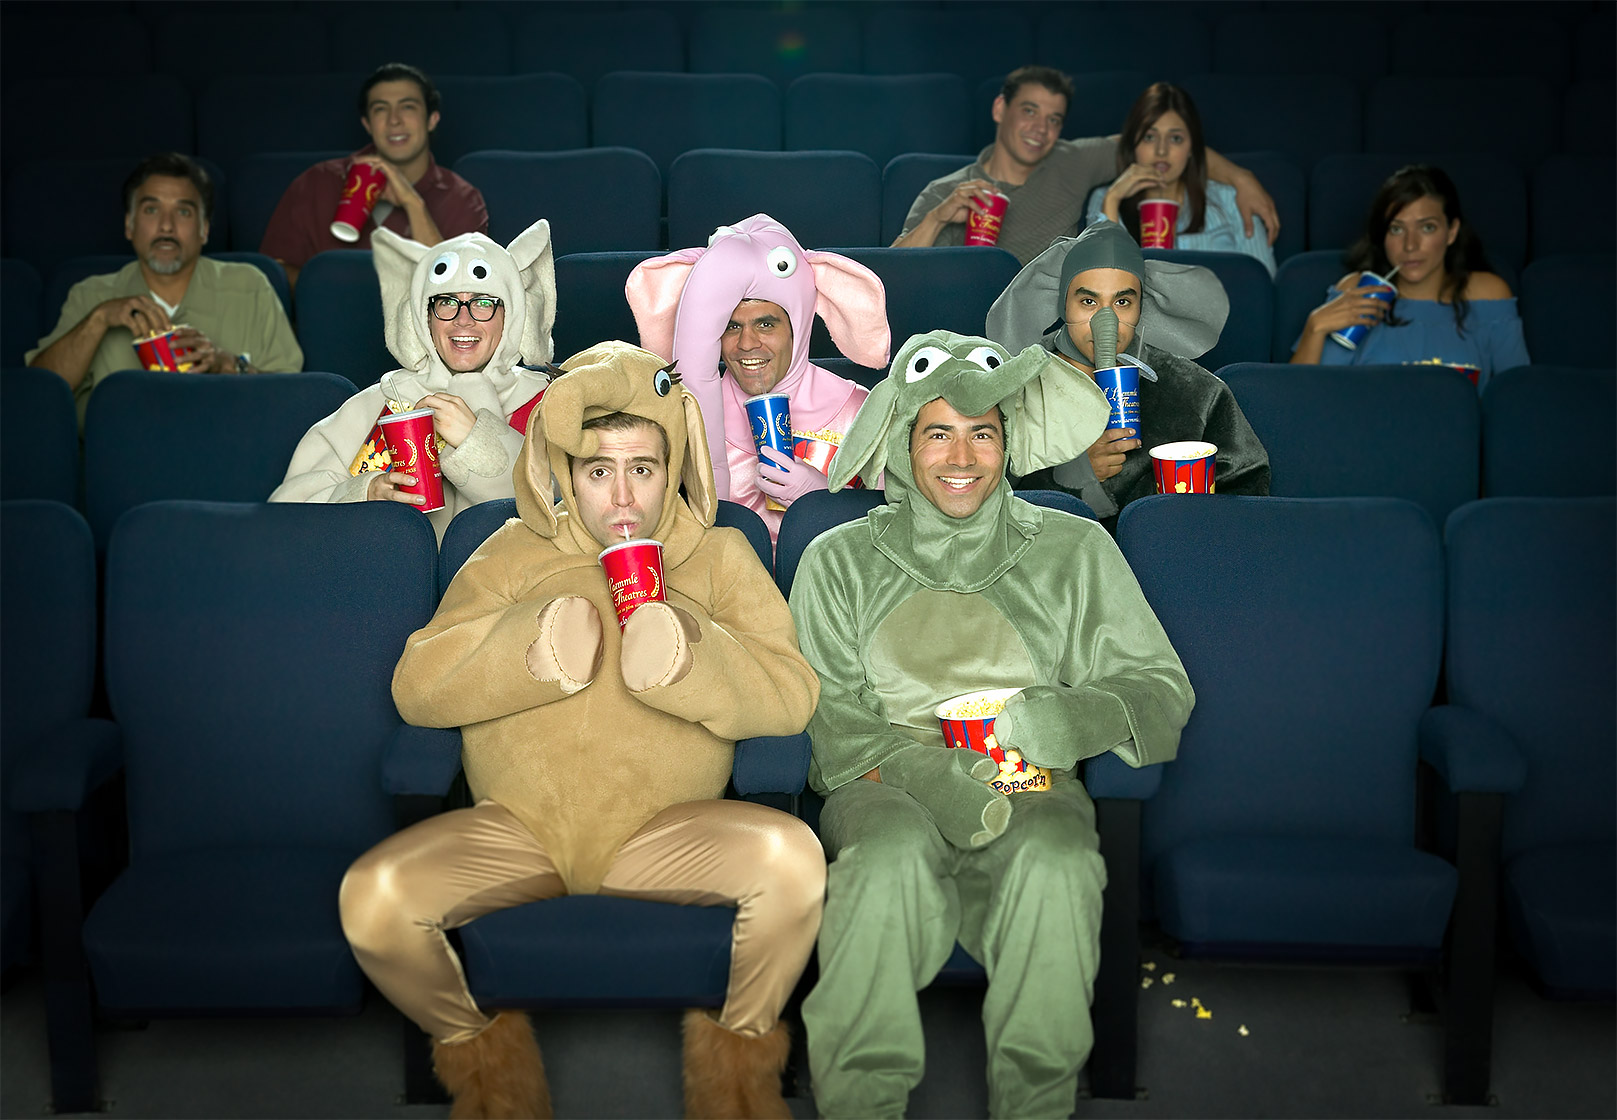 Five guys in elephant costumes with refreshments at the movies. Shot for Ford Focus by Phoenix product photographer Jason Koster.